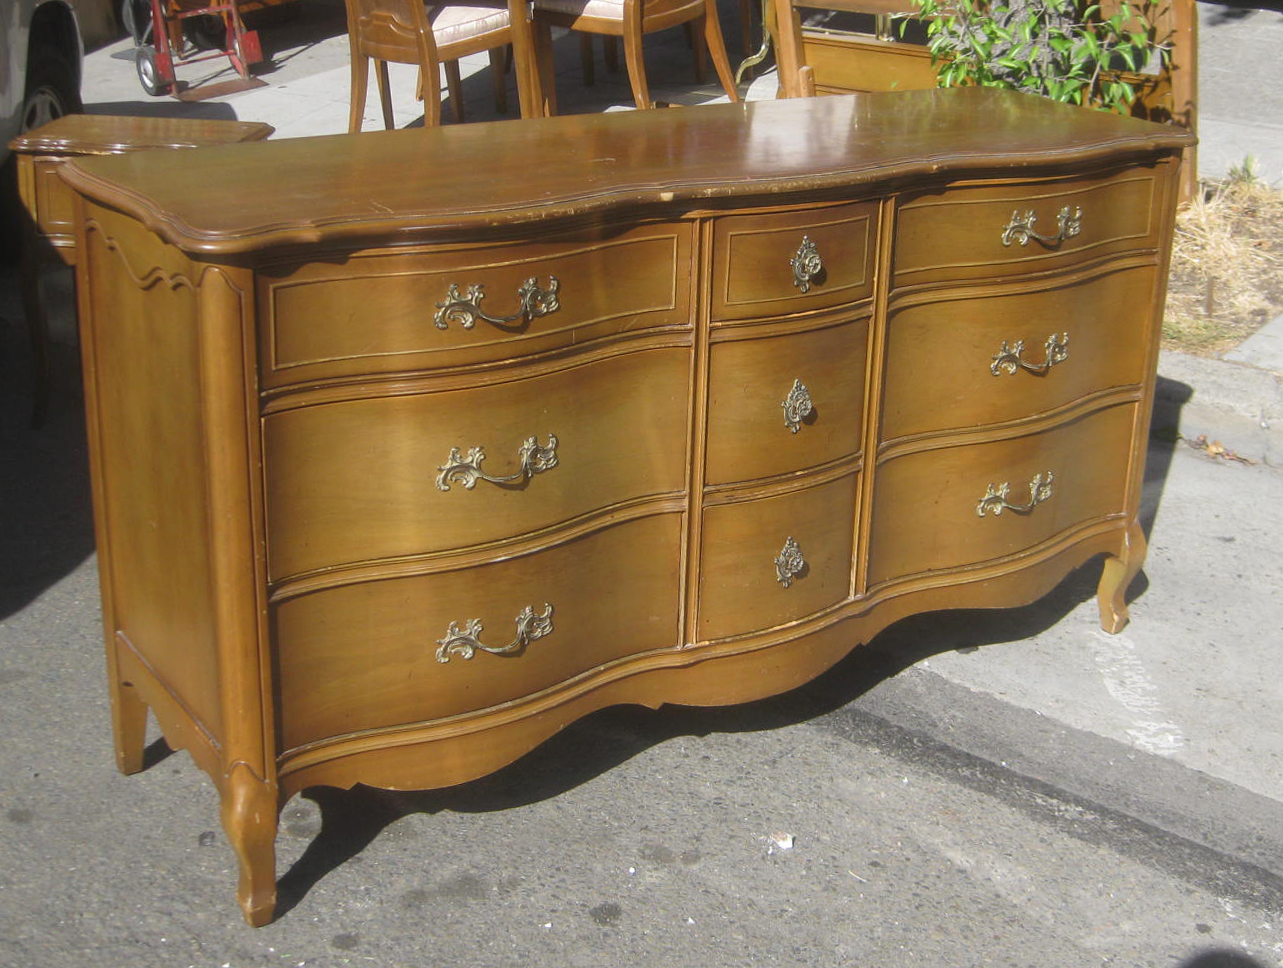 Uhuru furniture and collectibles - Classic French Furniture UpwithFurniture